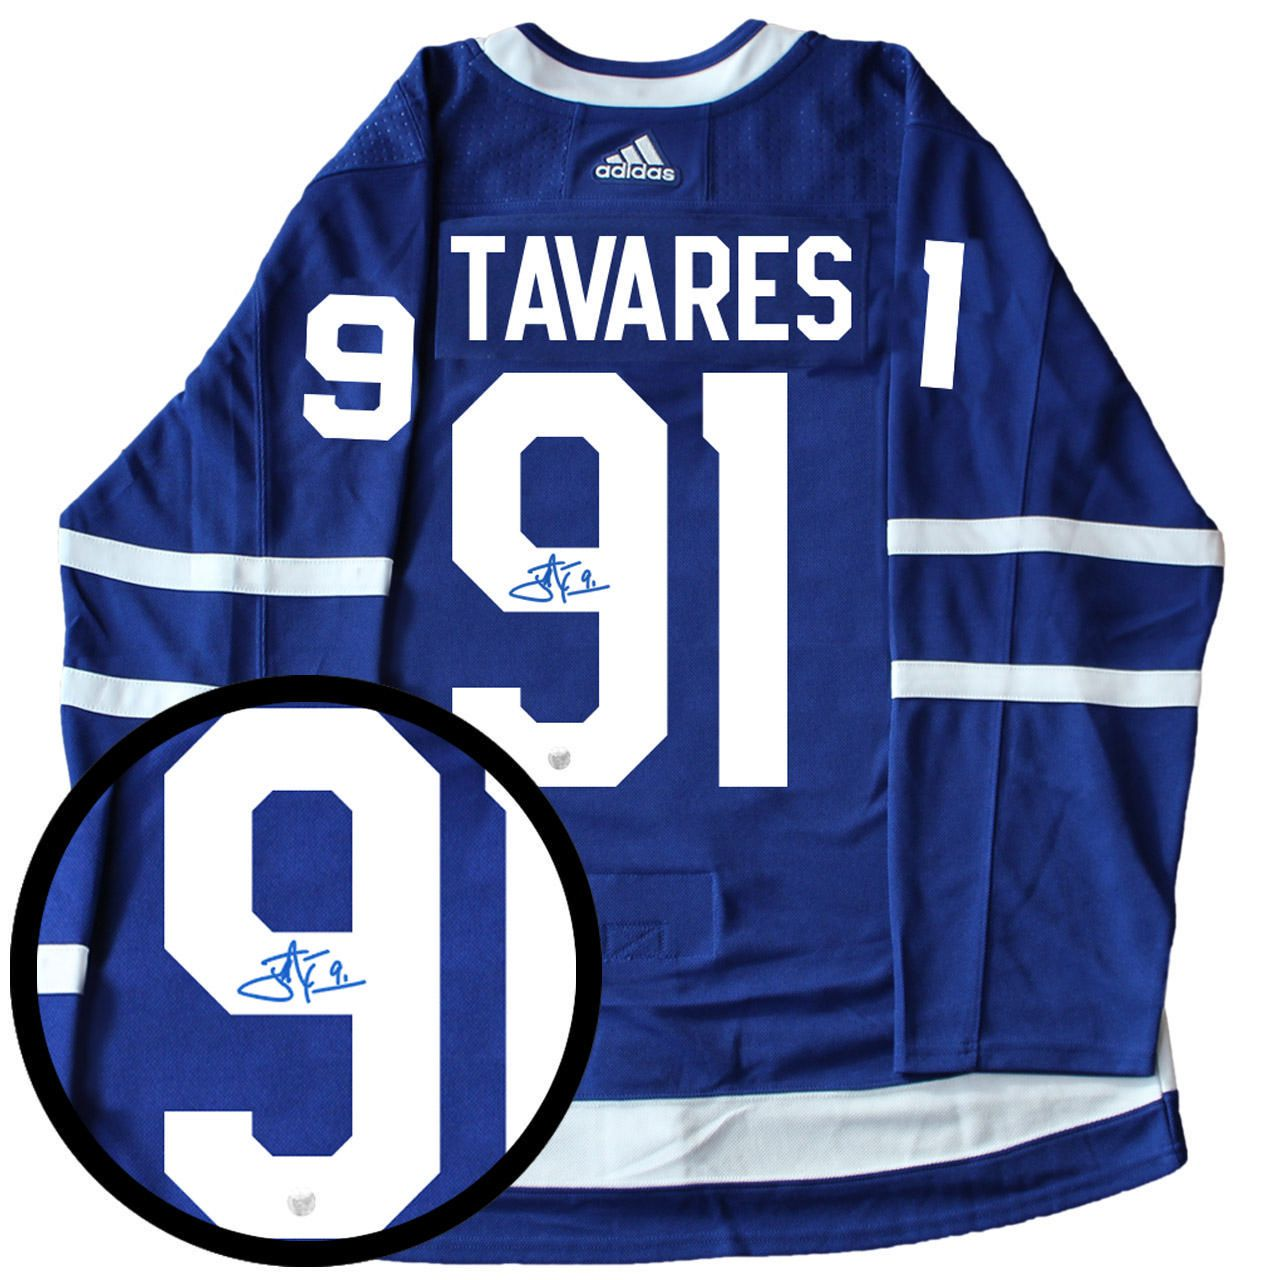 best service 6e89b 92137 John Tavares Signed Jersey Pro Adidas Toronto Maple Leafs Home Blue